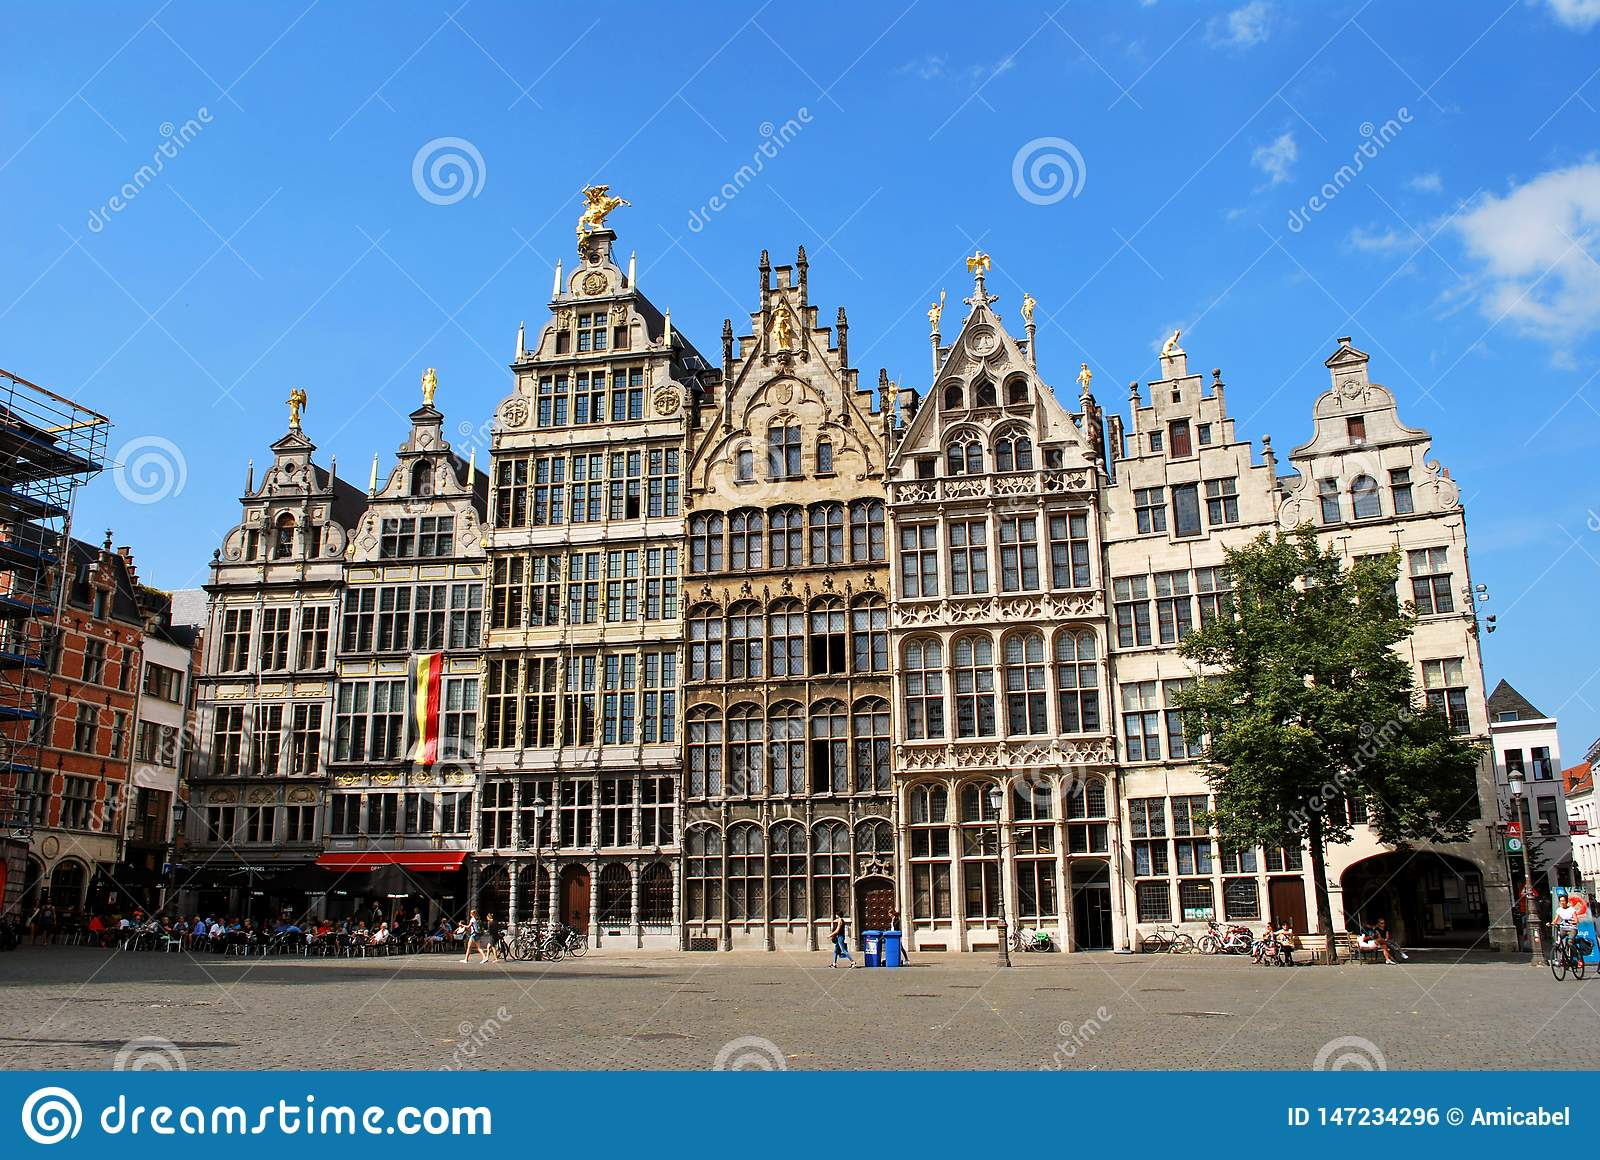 The Historical City Center In Antwerp Editorial Photo Image Of Panorama Antwerp 147234296